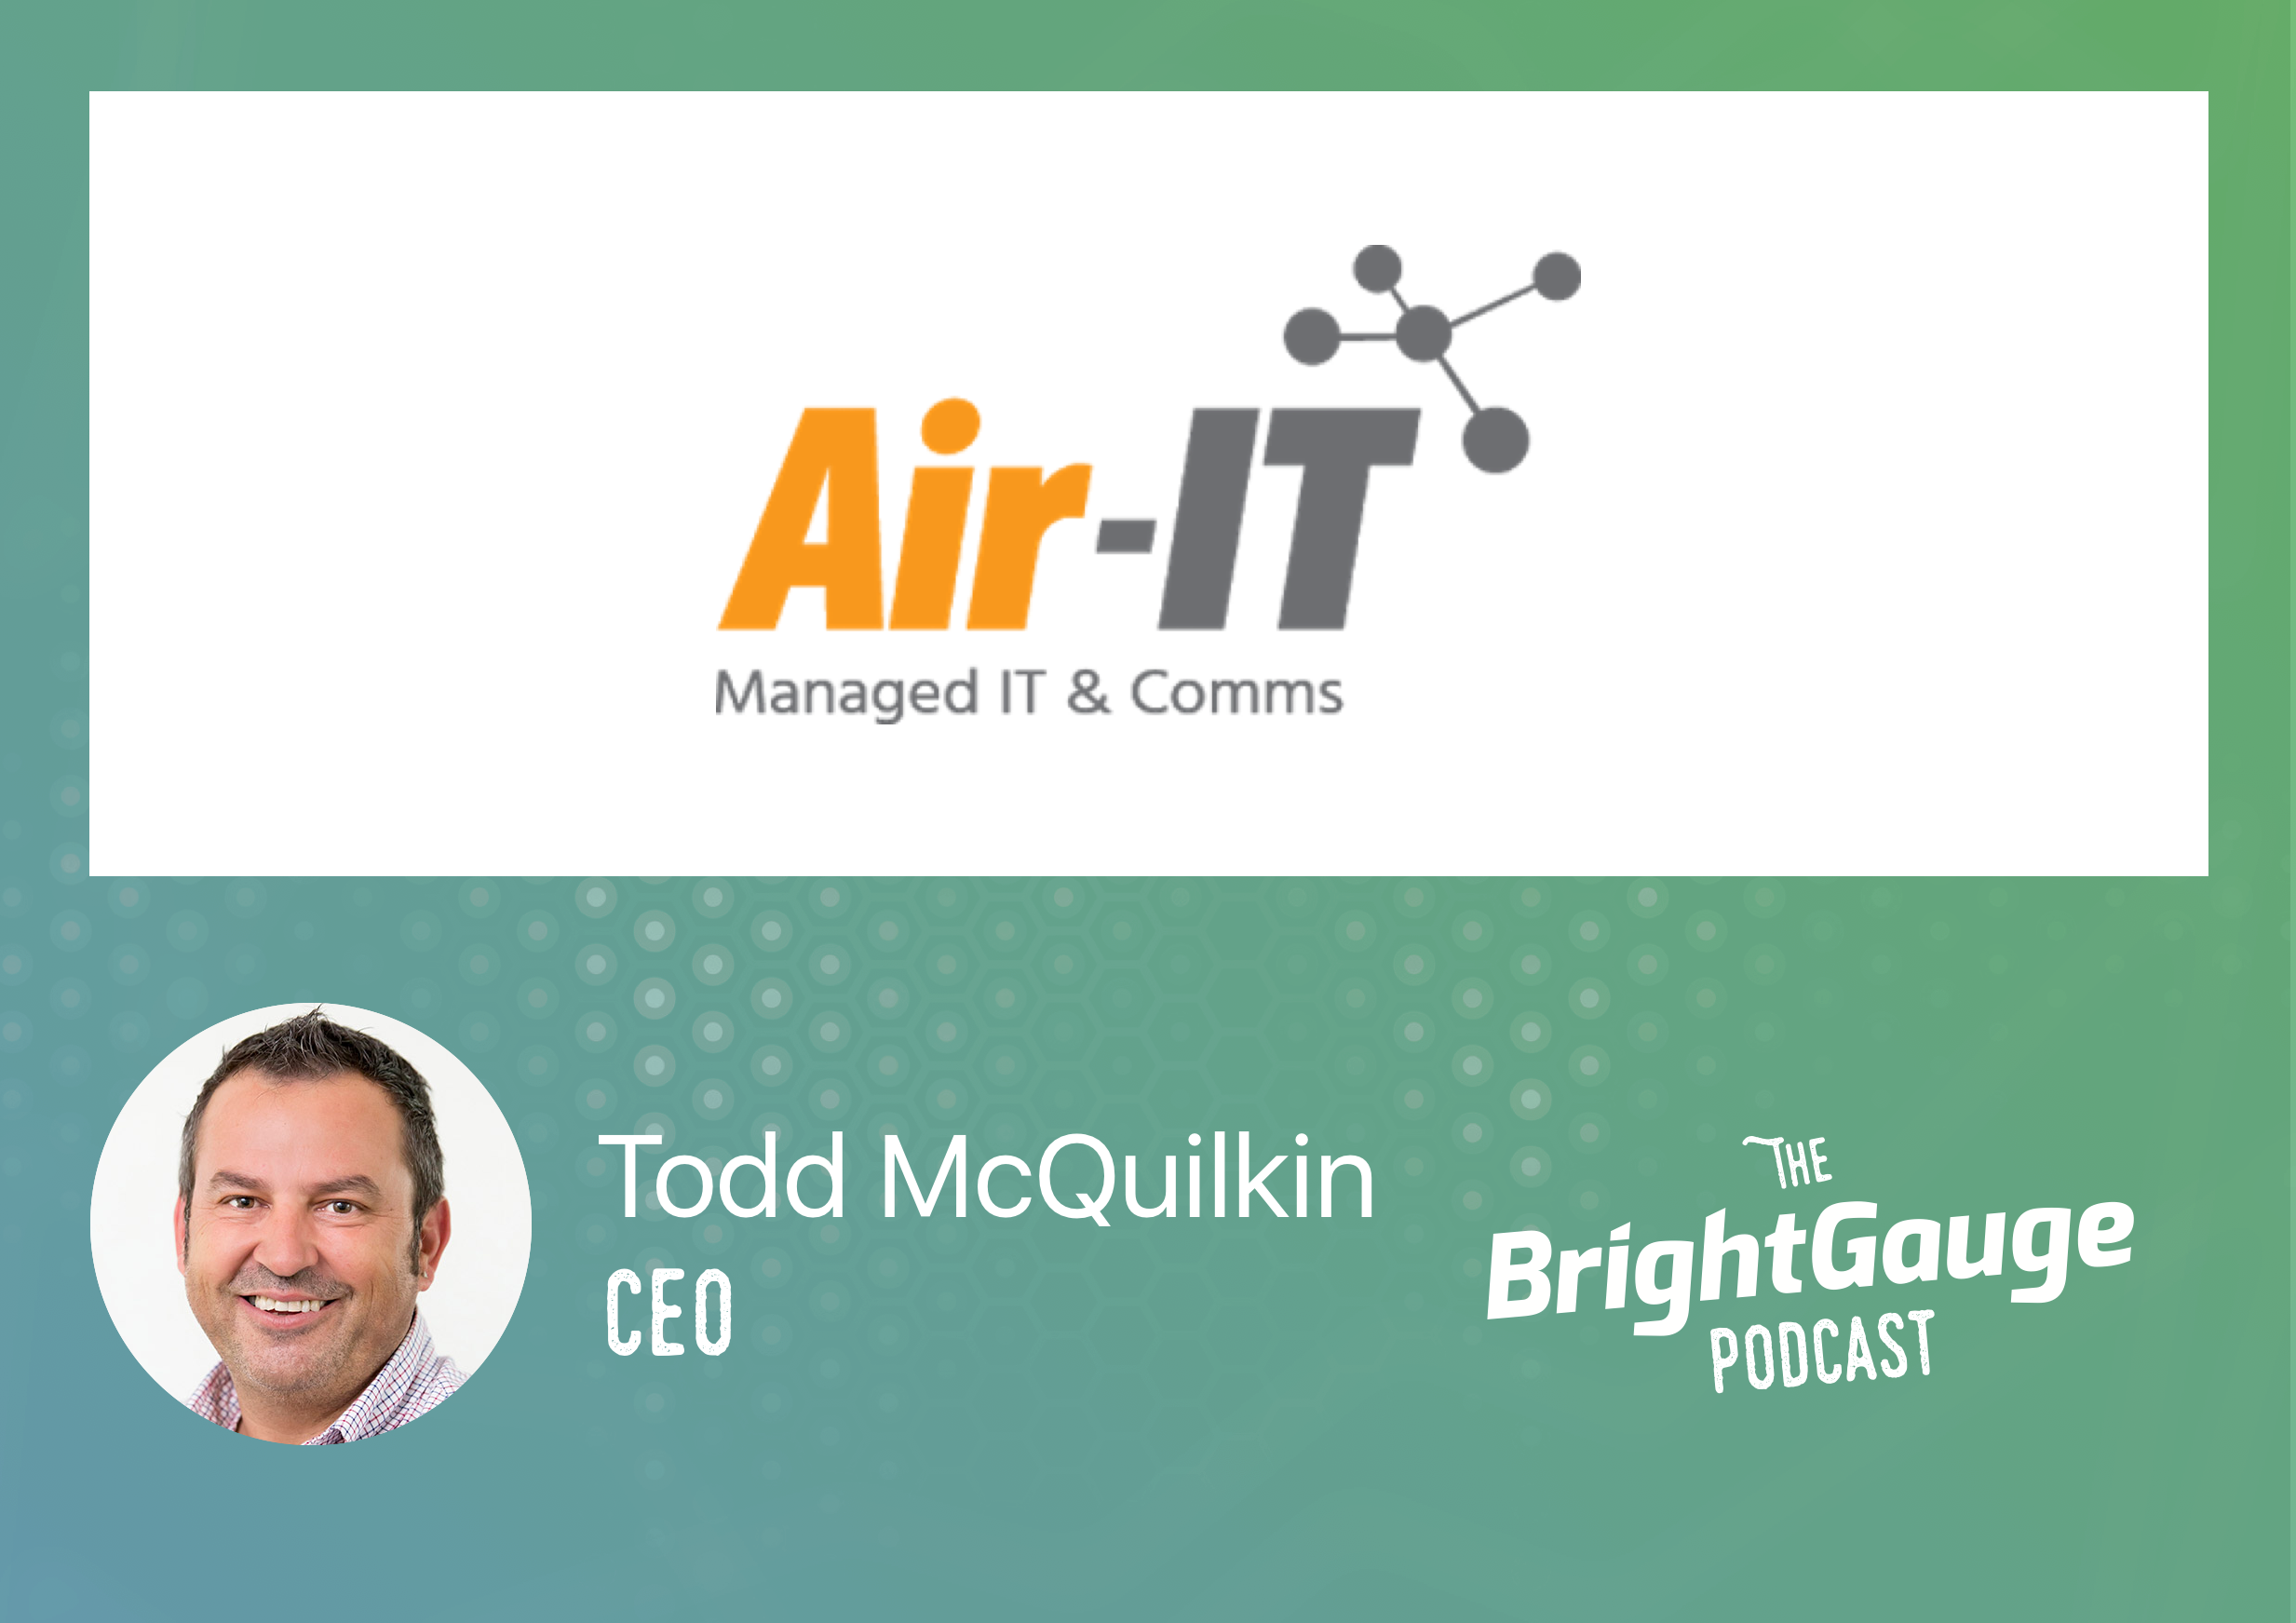 [Podcast] Episode 34: Todd McQuilkin & Simon Smith of Air-IT